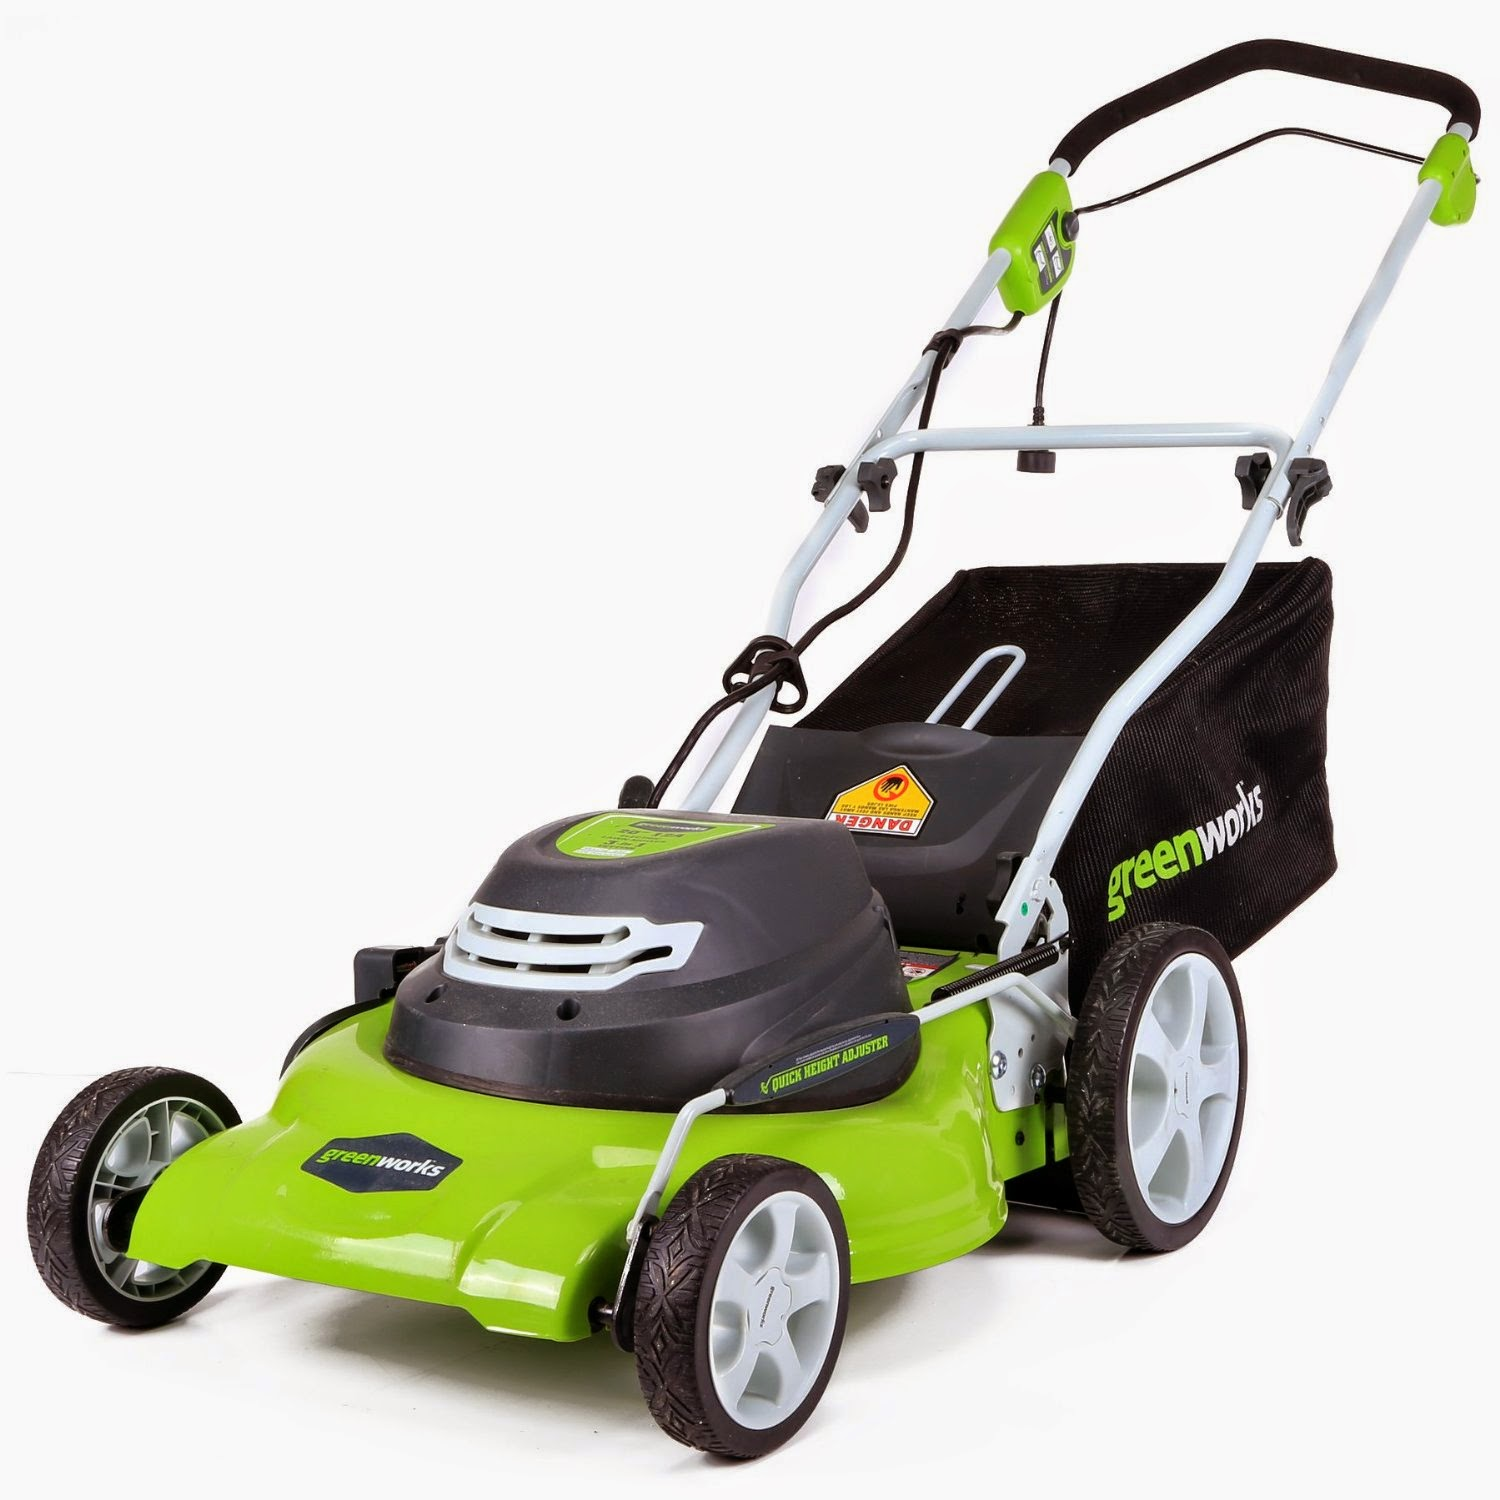 Leaf Blower 3-in-1 Electric Lawn Mower